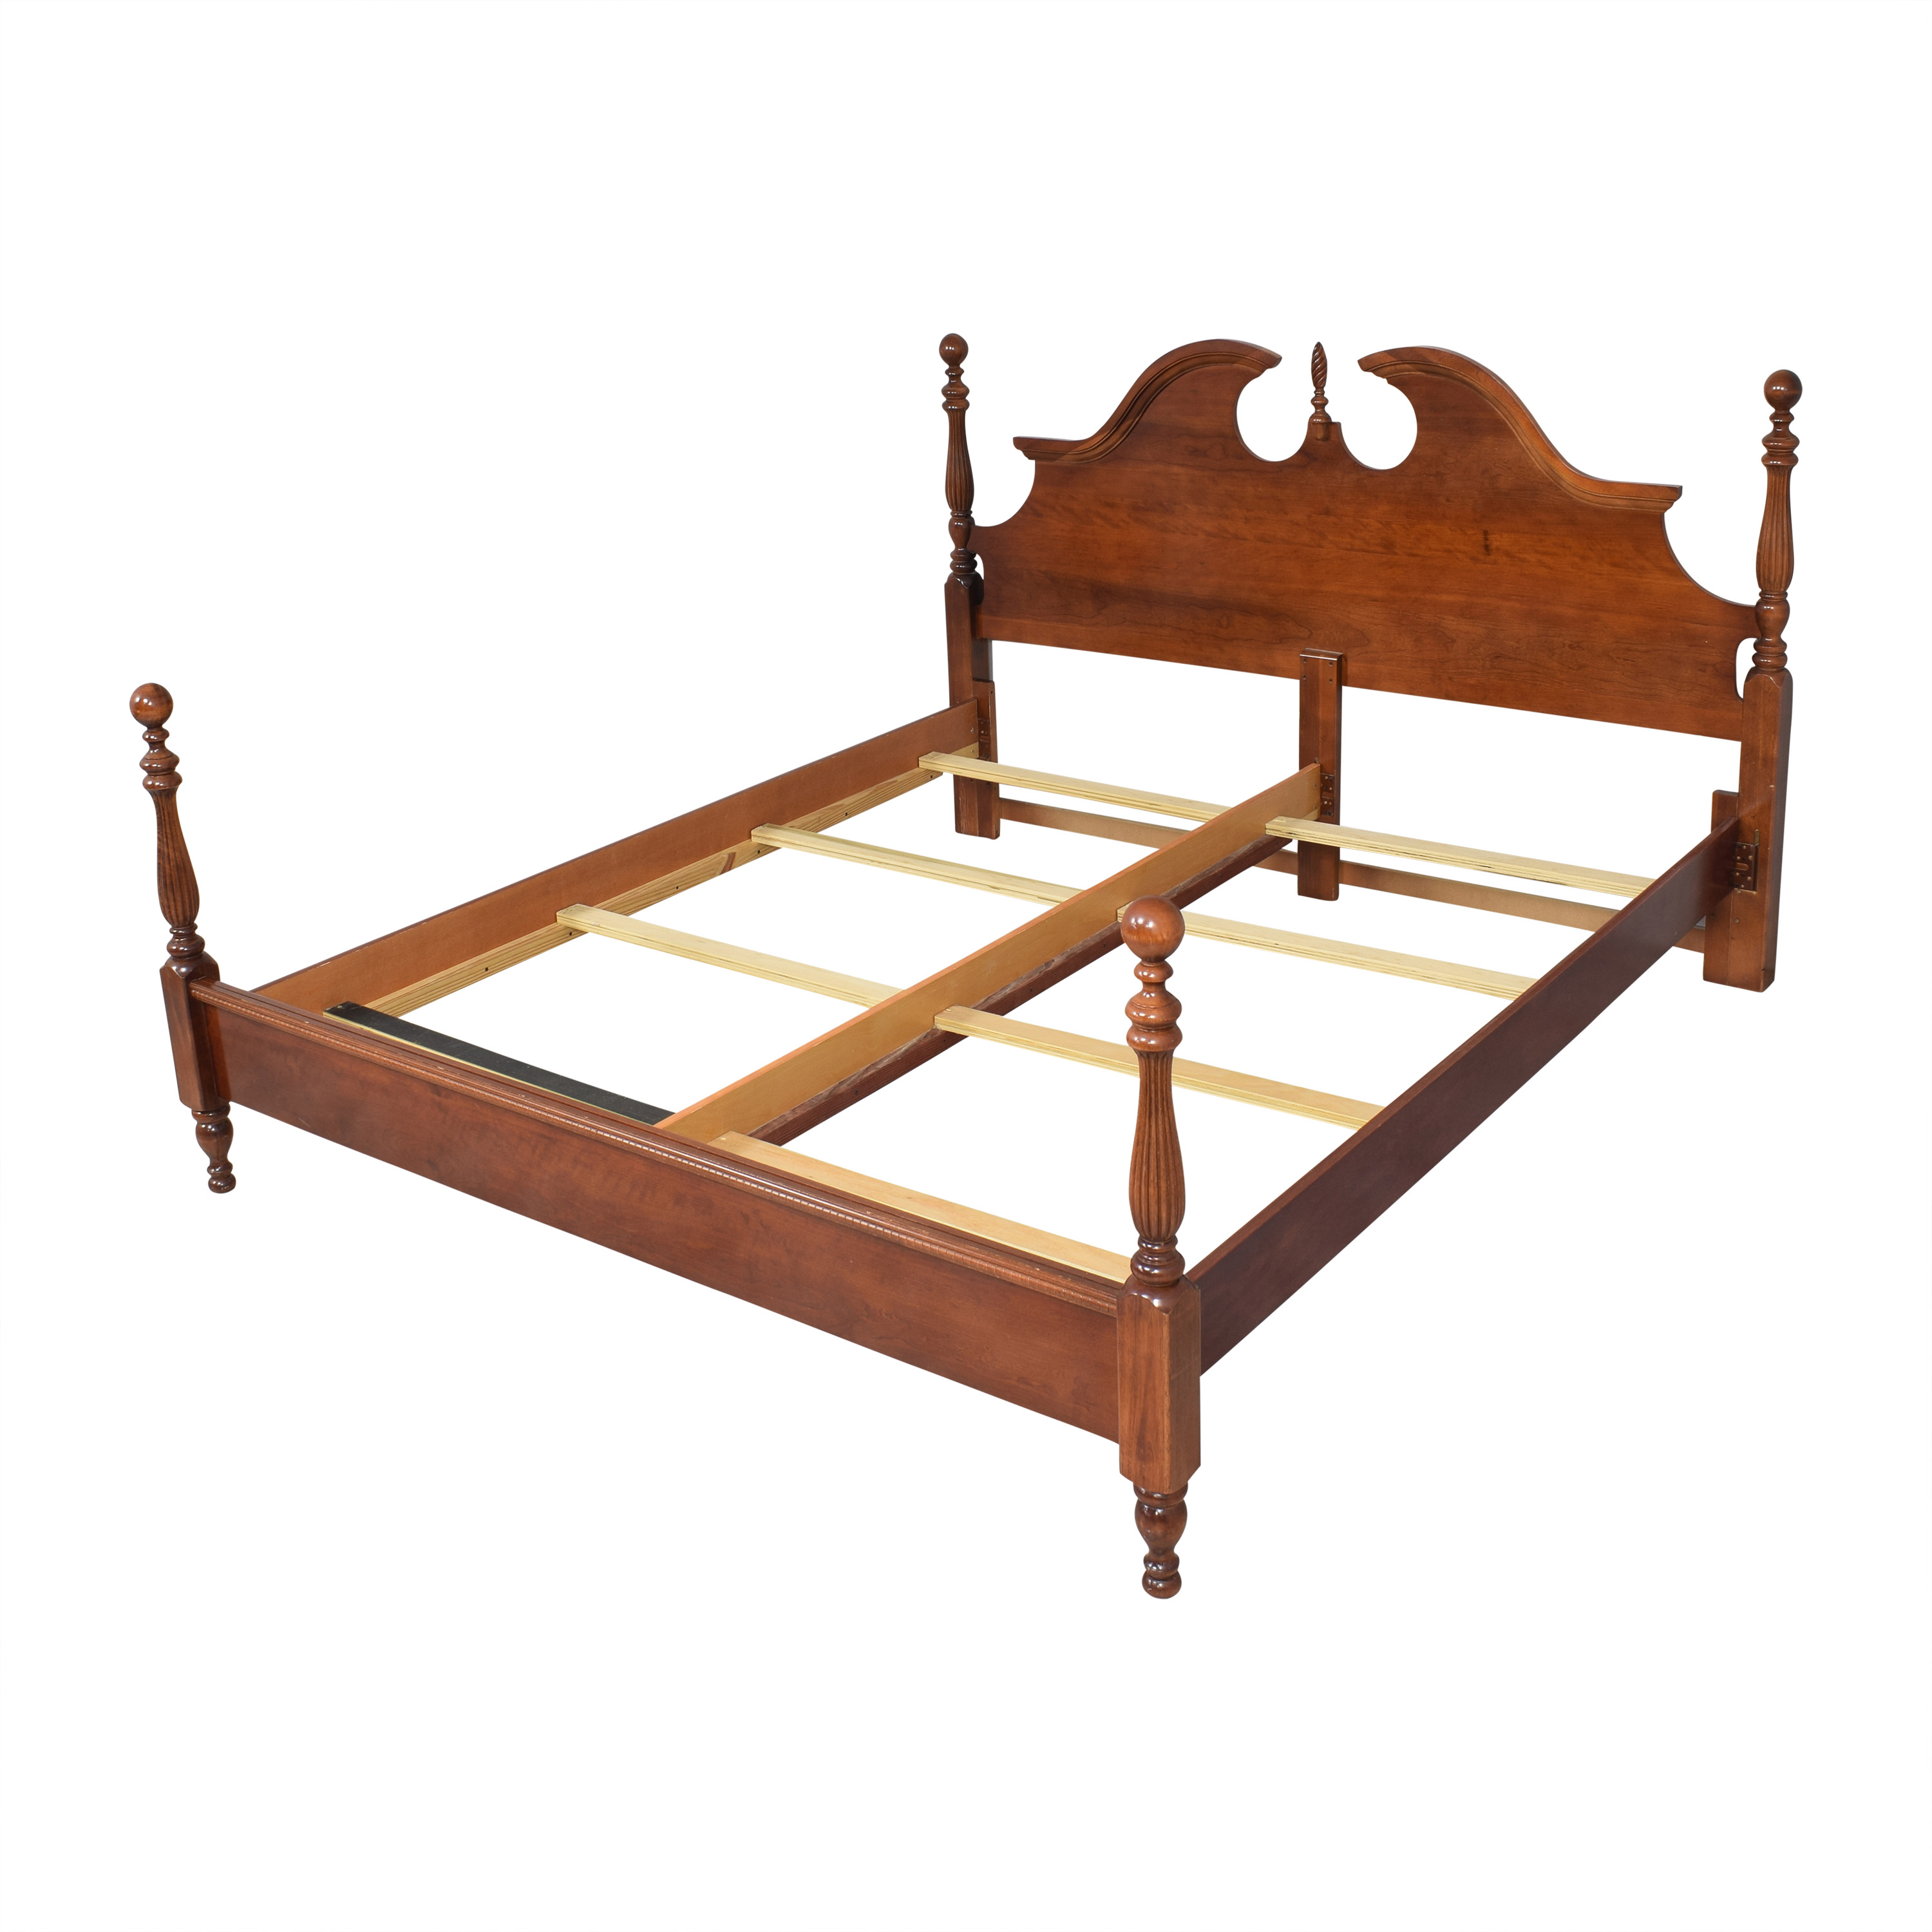 buy Raymour & Flanigan Raymour & Flanigan Four Poster California King Bed online